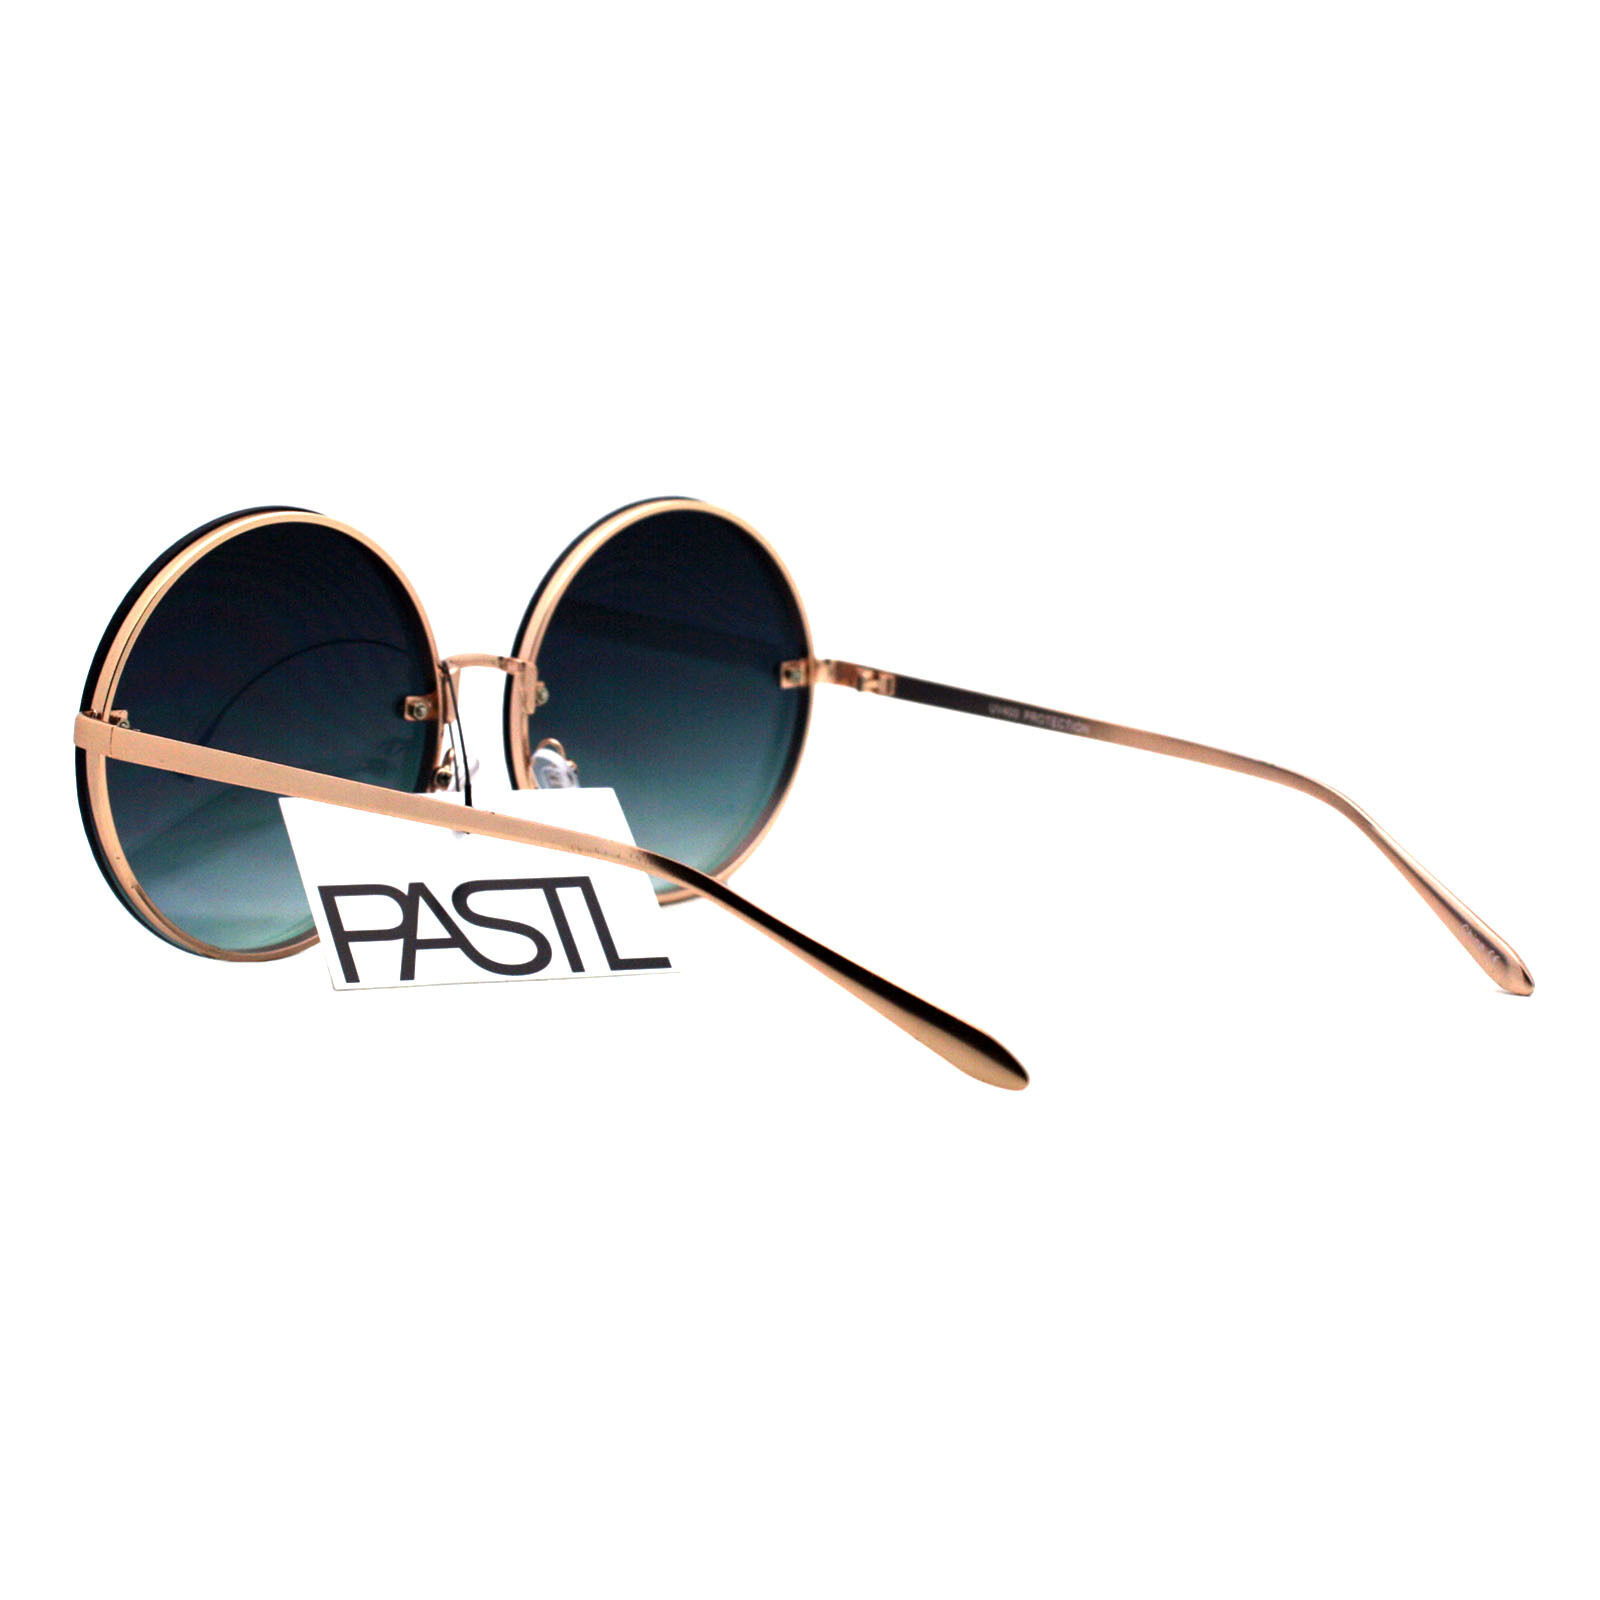 PASTL Super Oversized Round Sunglasses Womens Pink Mirror Lens UV 400 image 10